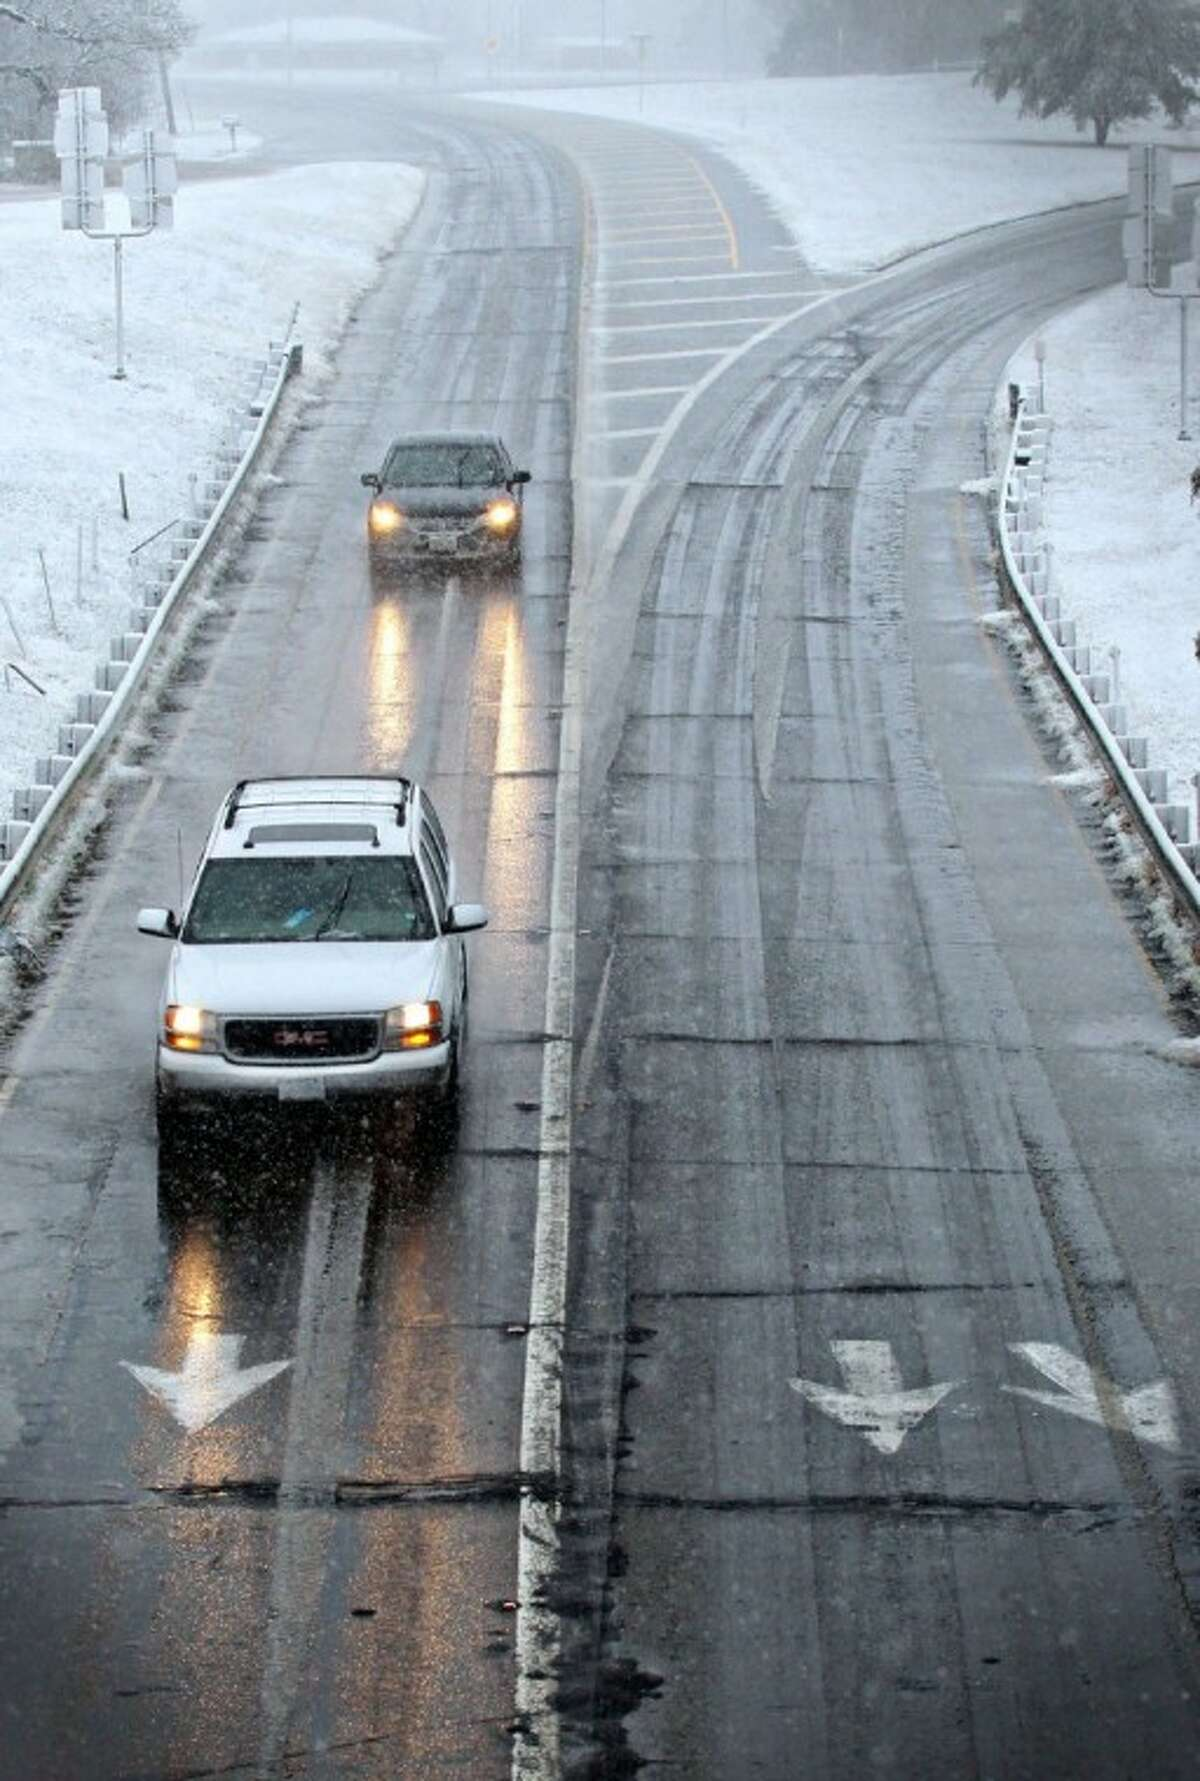 Drivers maneuver wet and icy roads in Paris, Texas, Tuesday after a strong winter system dropped inches of rain and snow on most of northeast Texas.